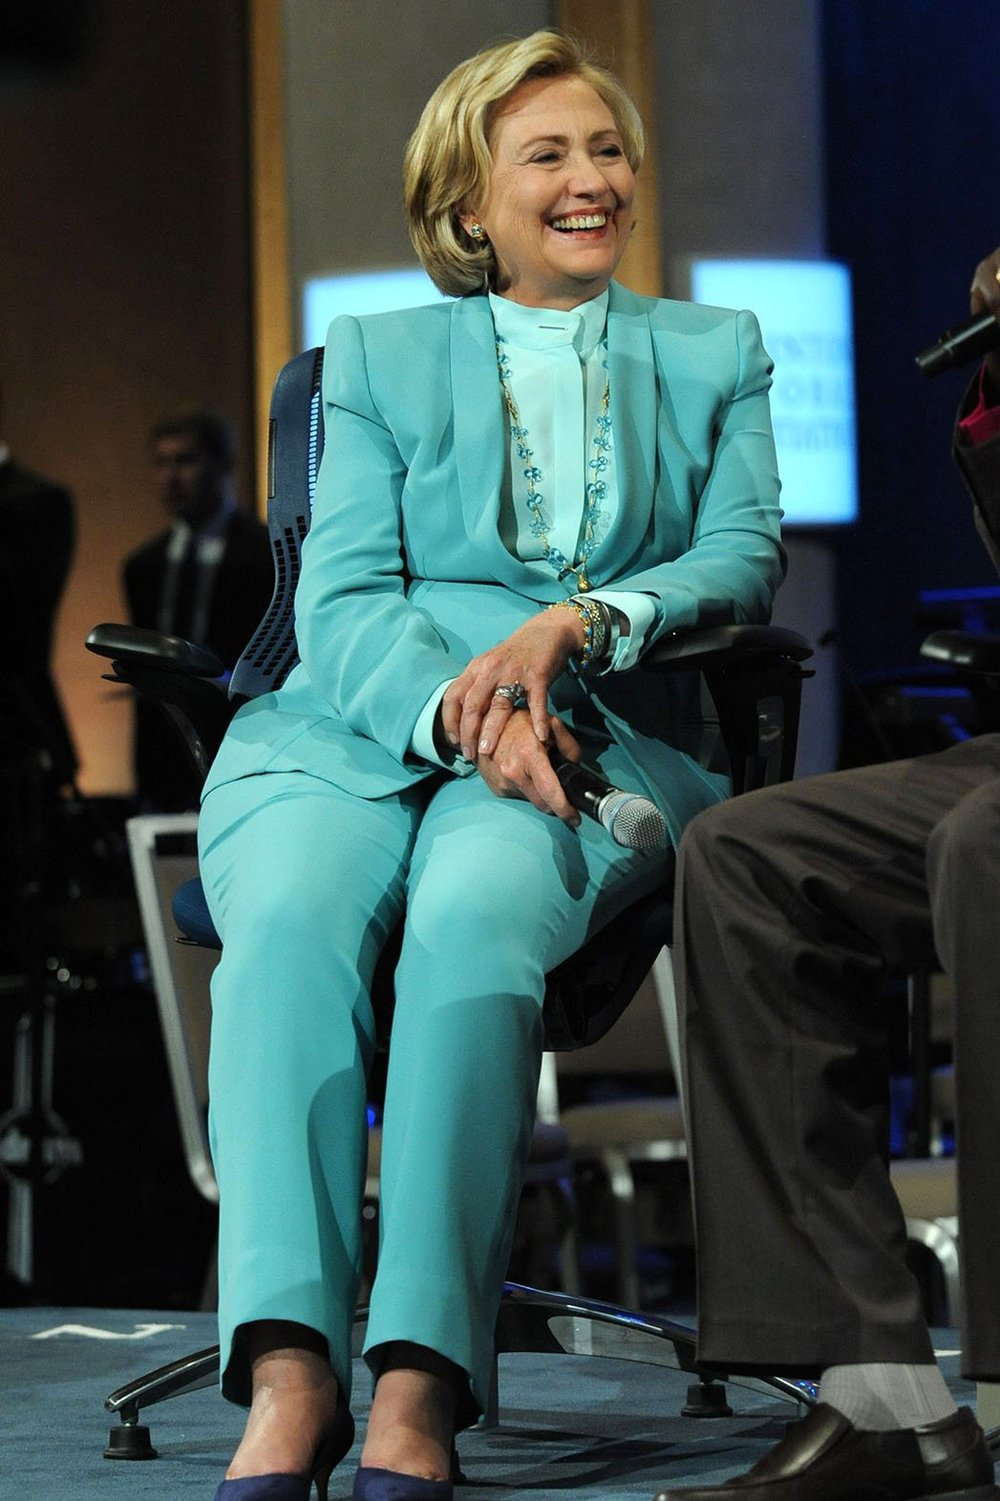 5. 2013- Tasteful in Teal       With a conservative neckline and dazzling accessories, Hillary takes on an interview.